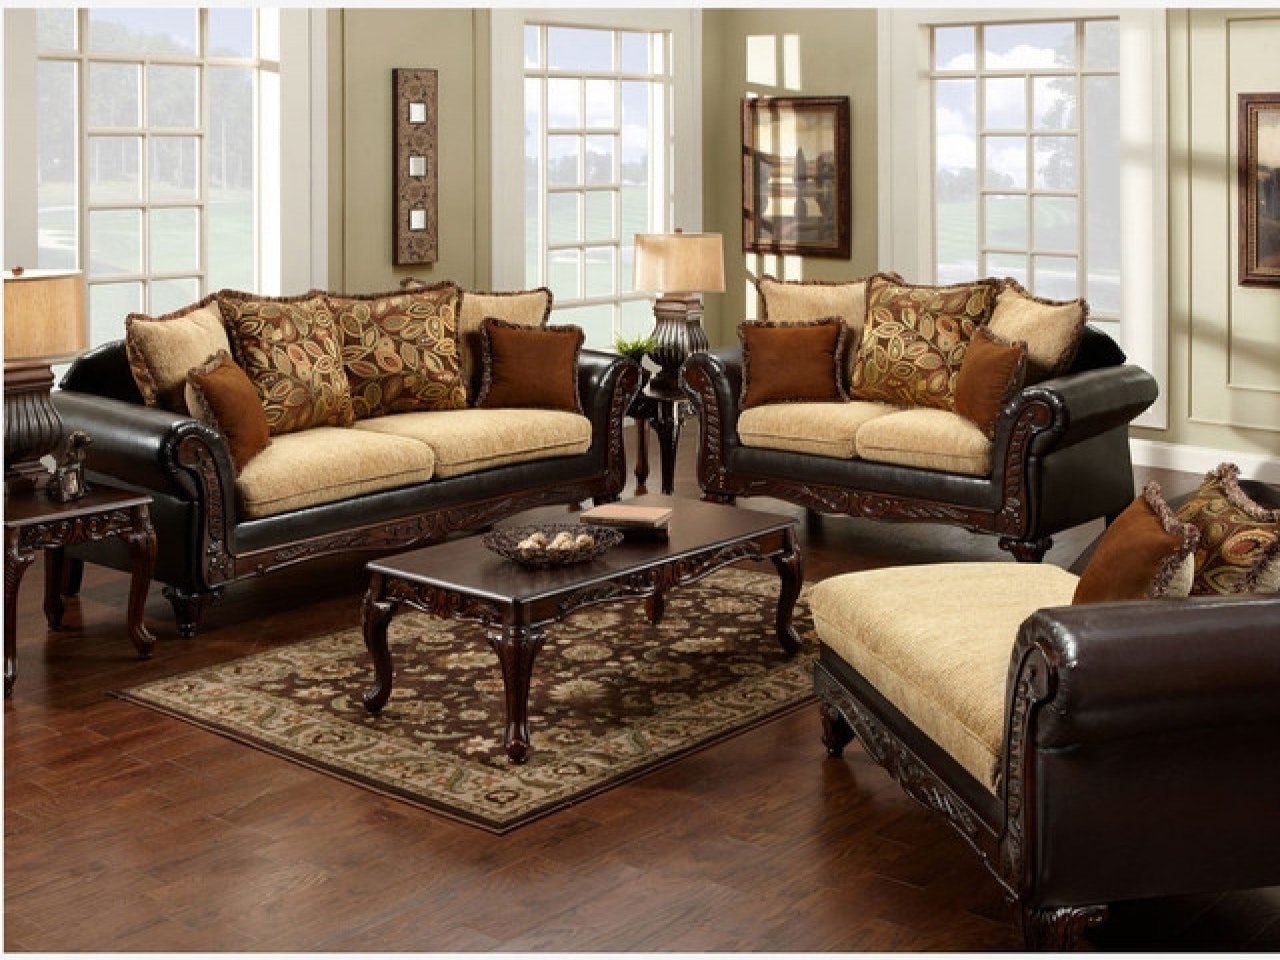 Leather And Cloth Sofas In Best And Newest Couches With Two Different Fabrics Leather And Fabric Sofa In Same (View 9 of 20)